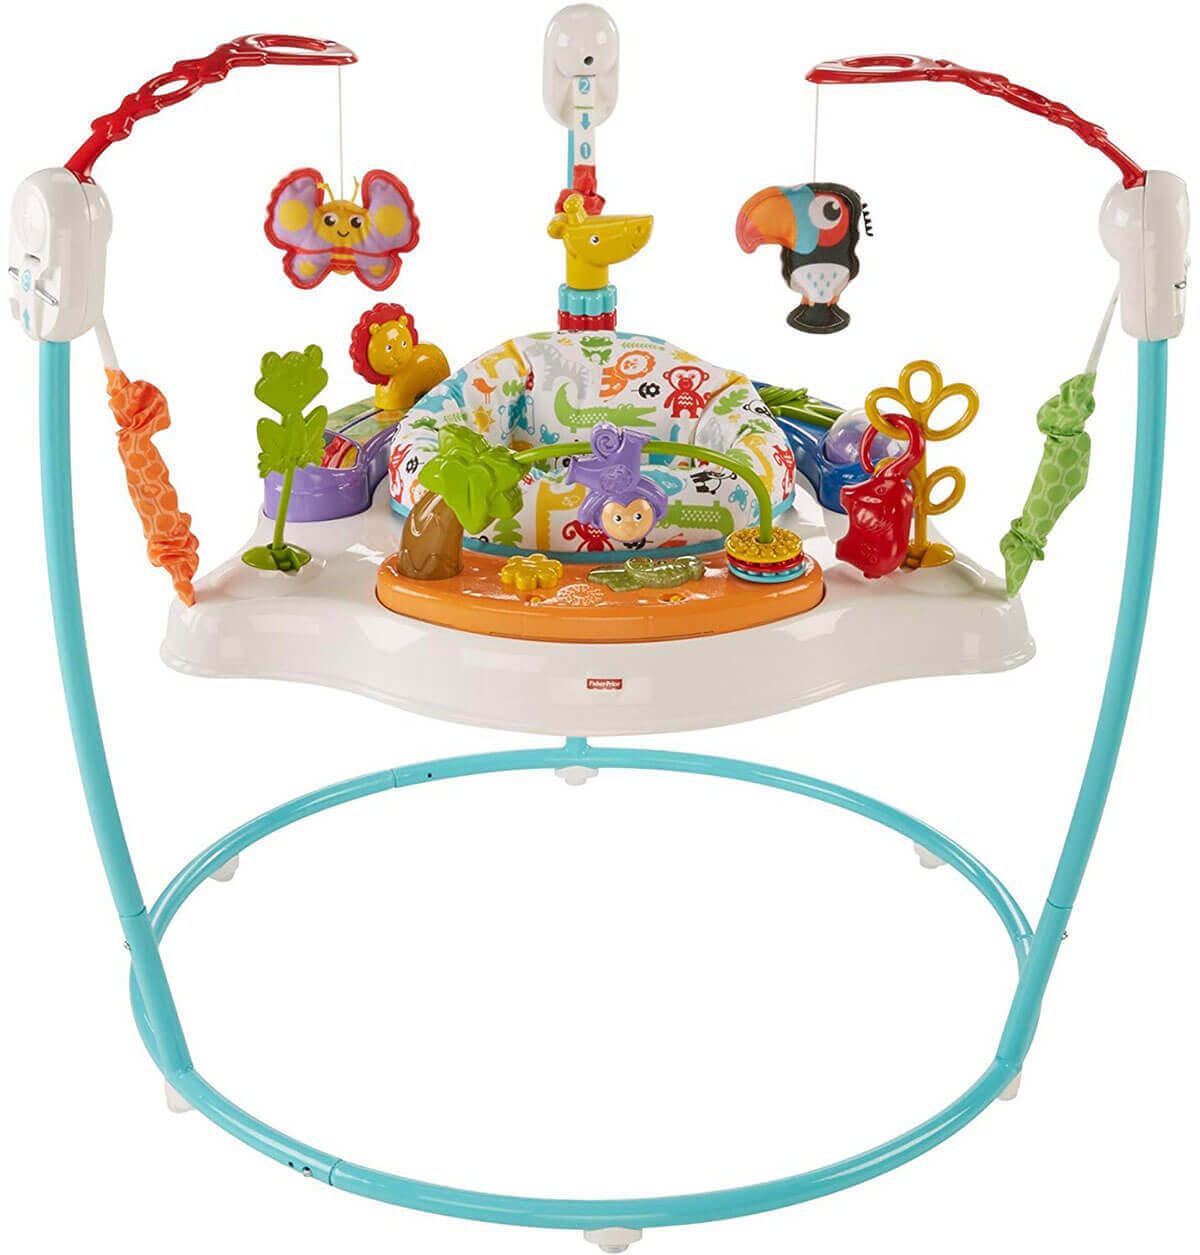 Image of a Fisher-Price Animal Activity Jumperoo on white background.